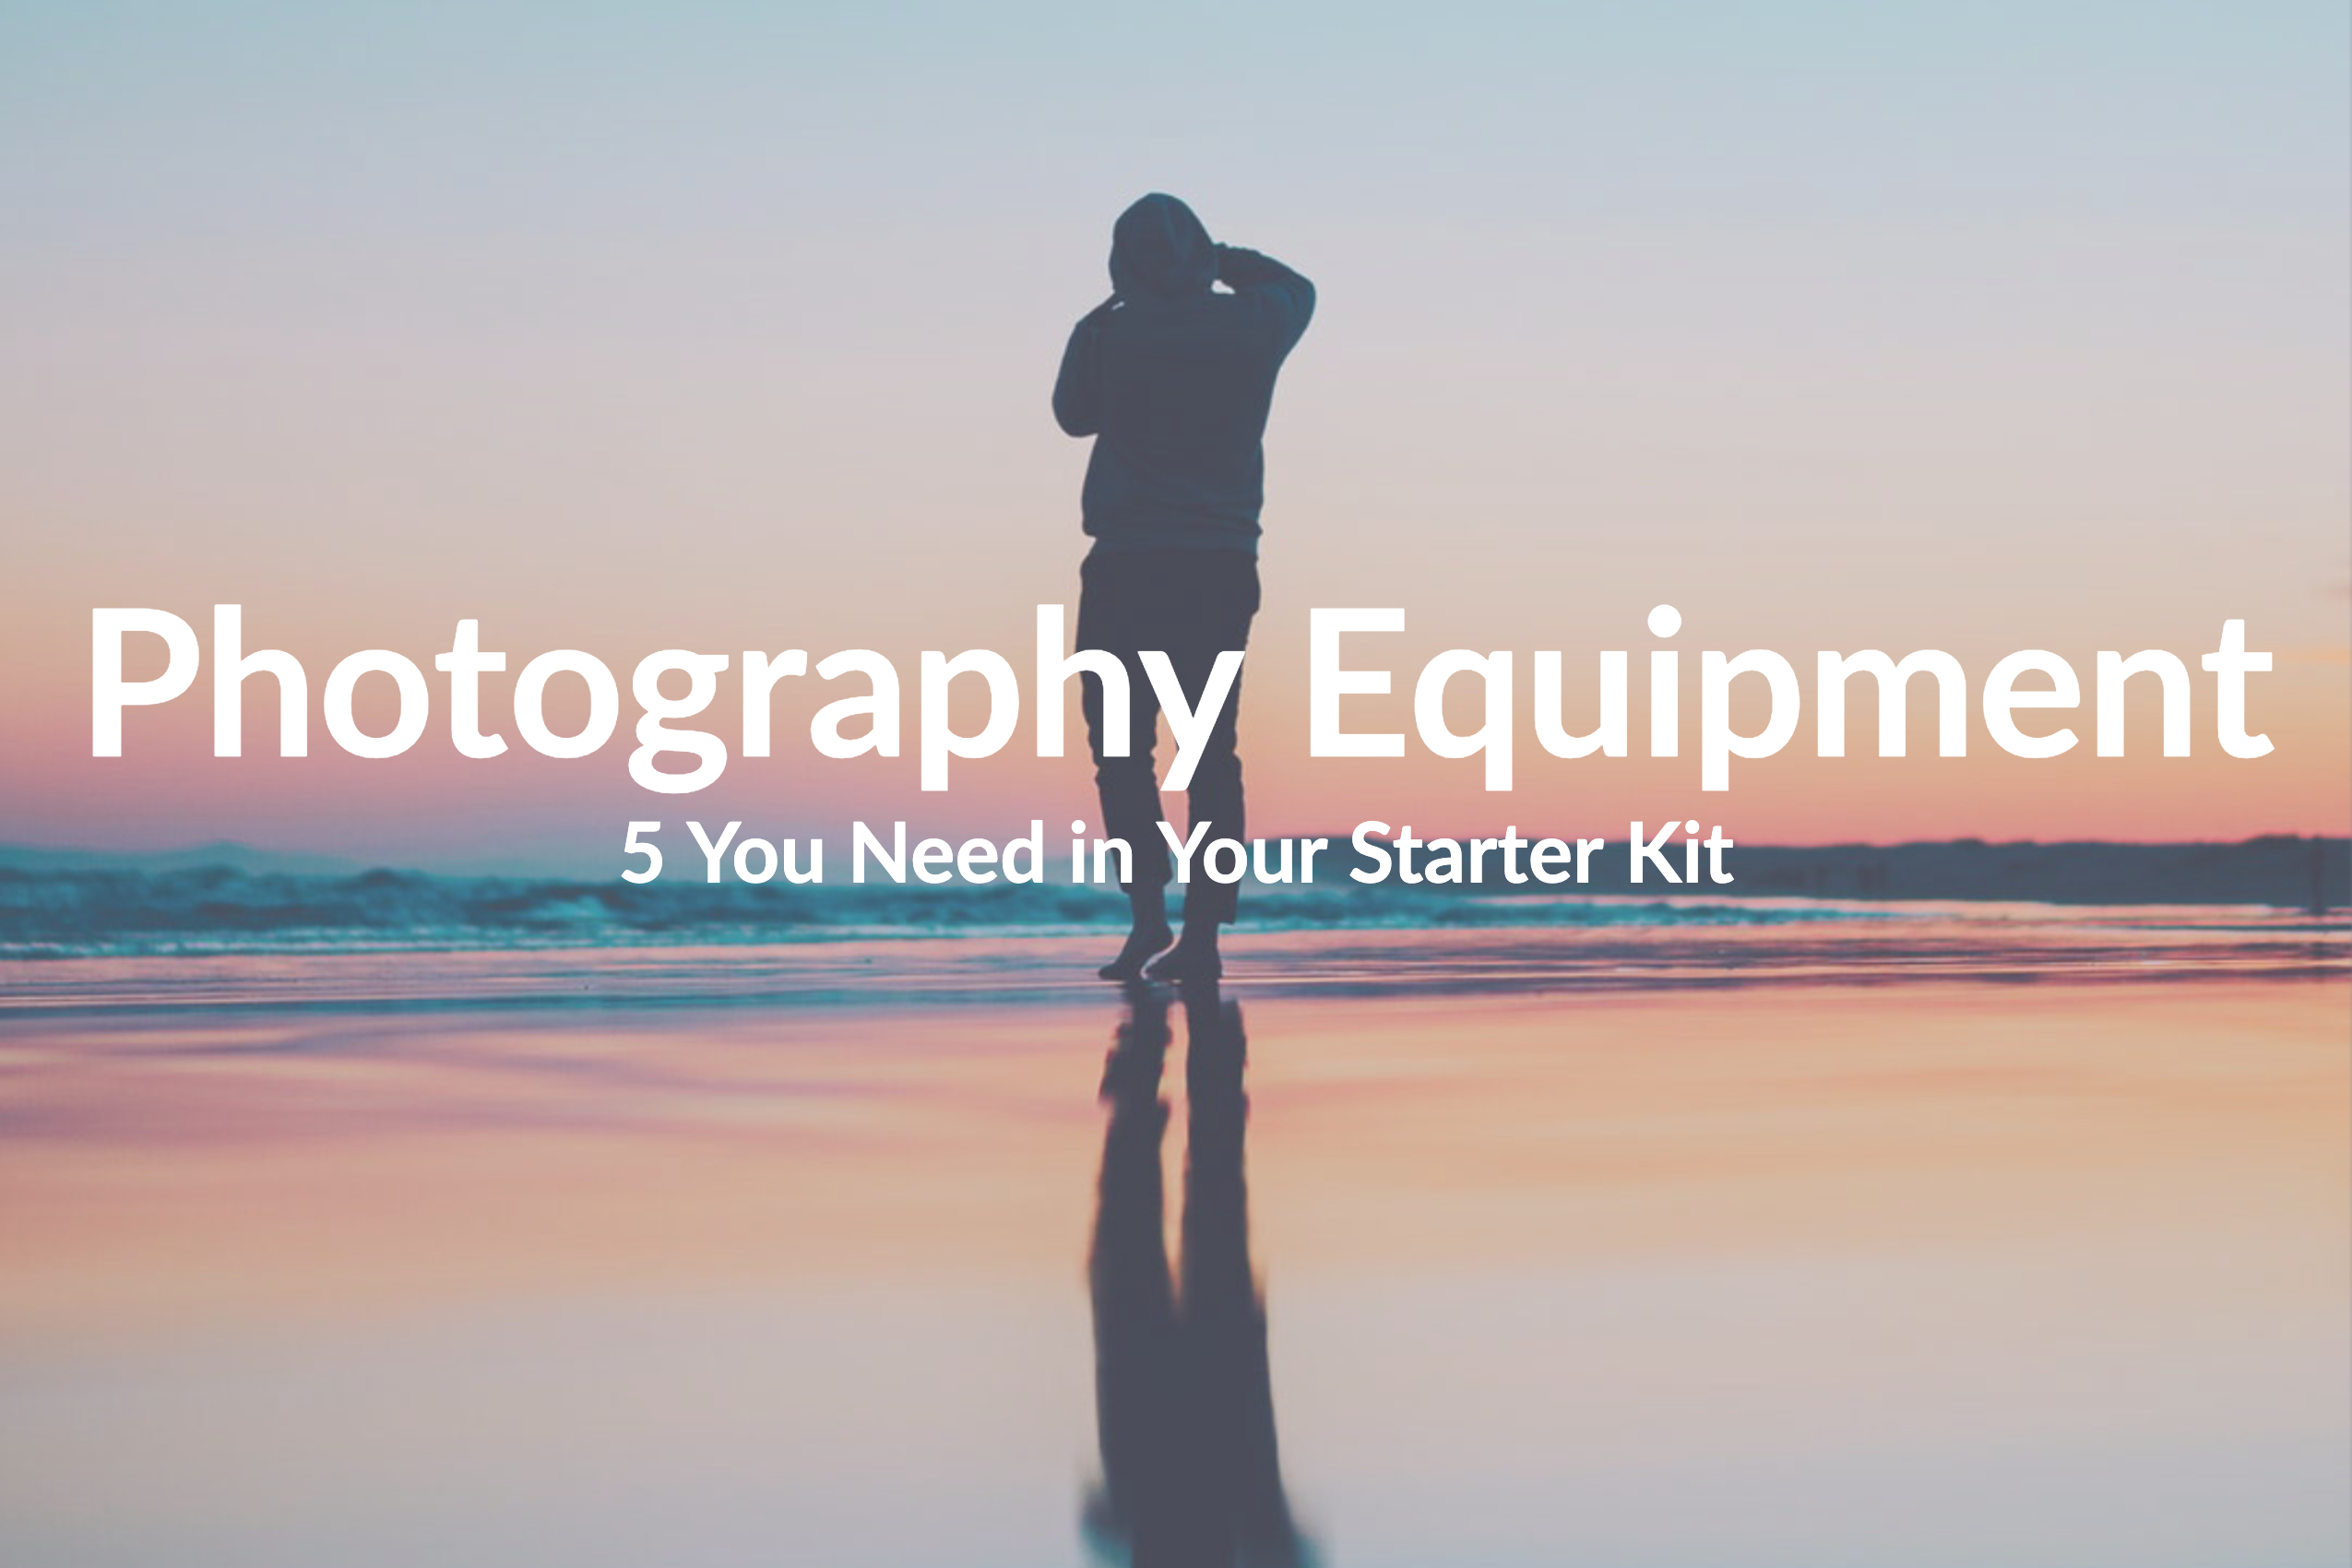 Advertising Photography Equipment: 5 You Need in Your Starter Kit